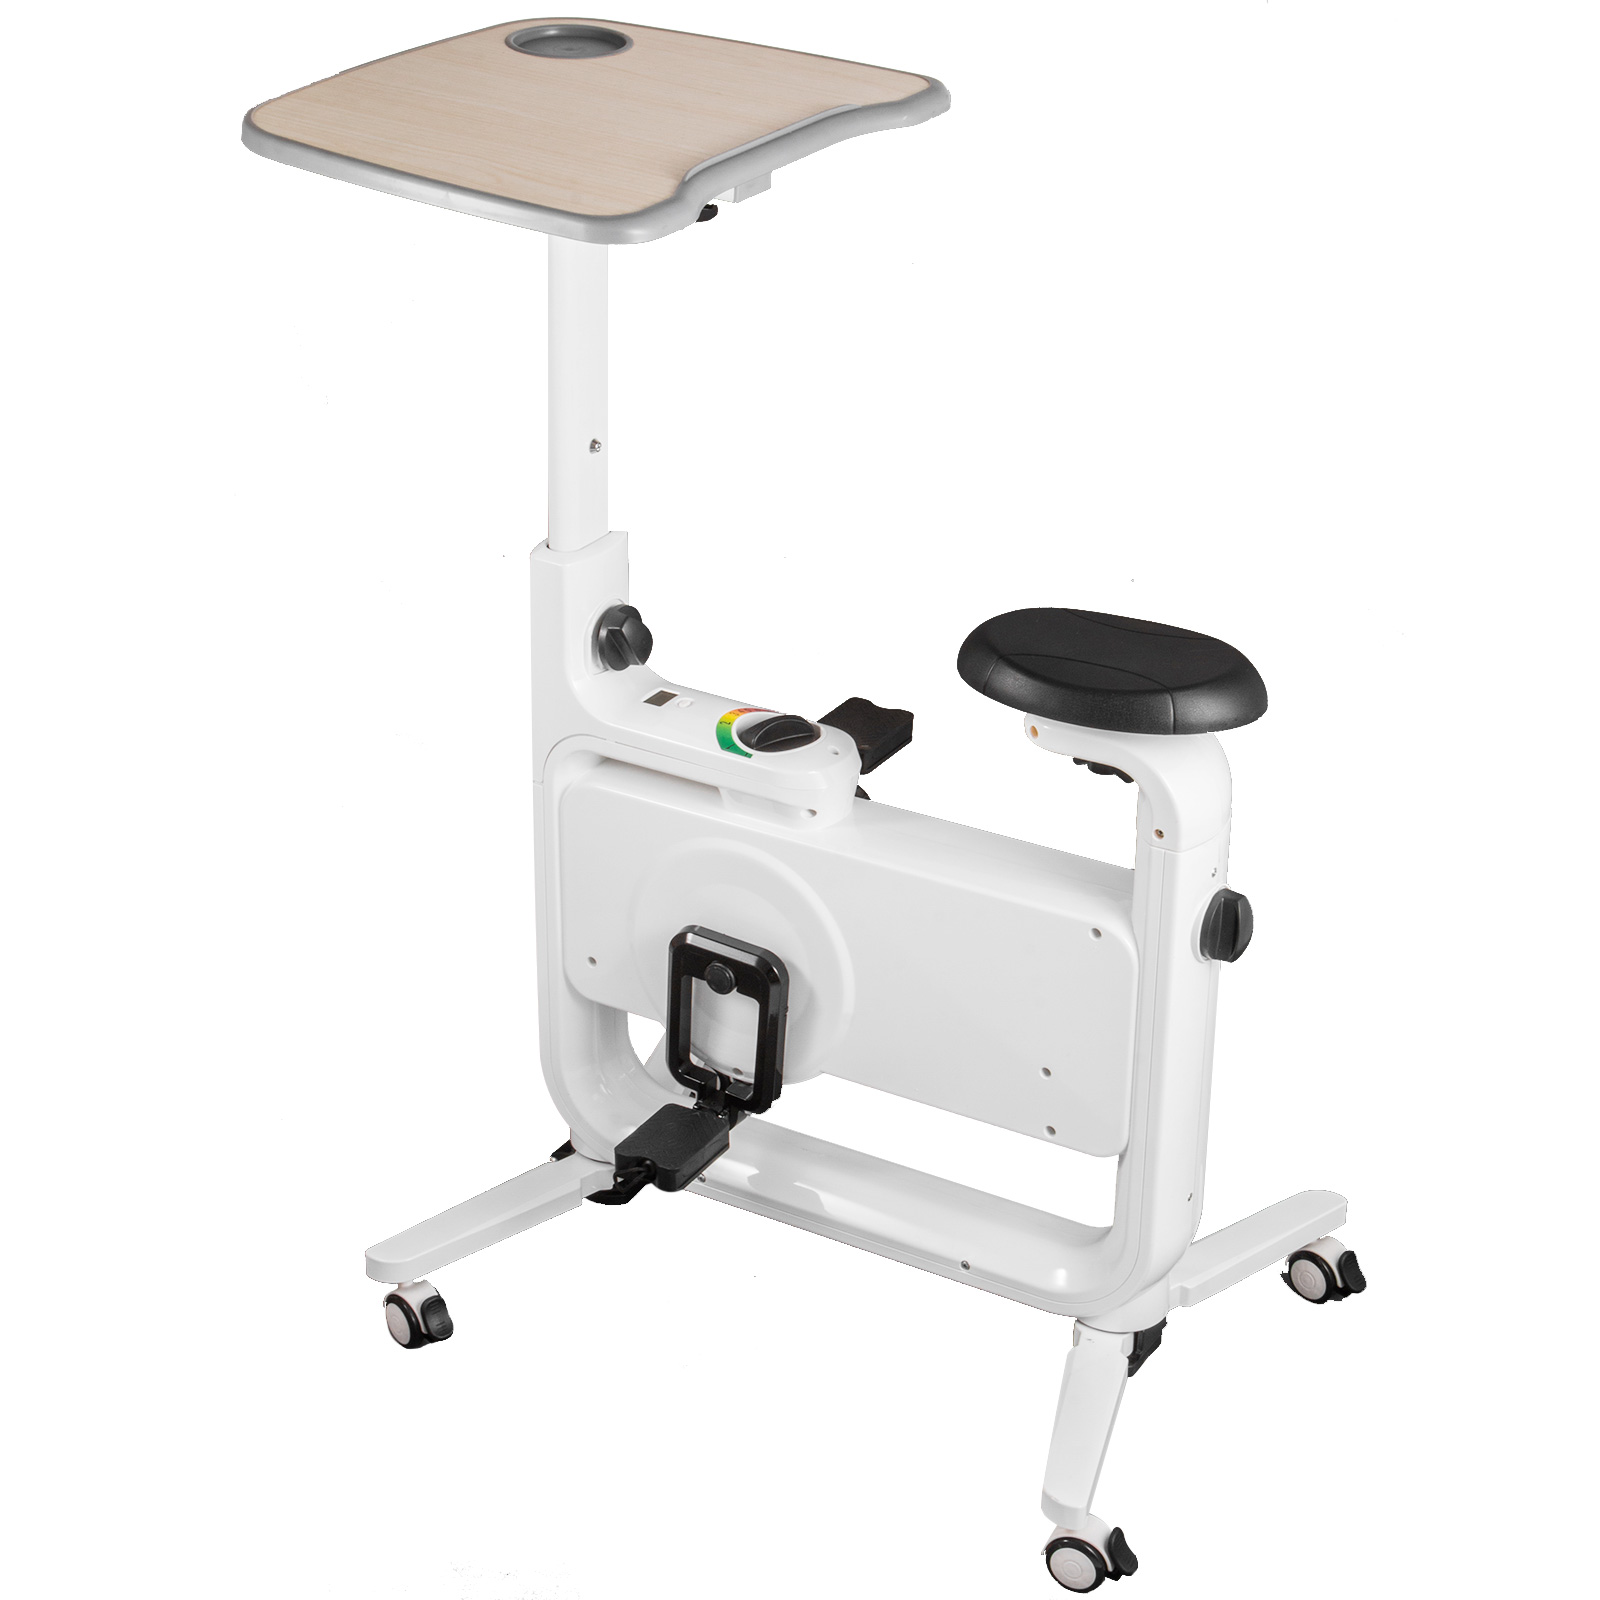 Multi-style-Magnetic-Exercise-Bike-office-Bicycle-under-Desk-Fitness-Cardio miniature 48